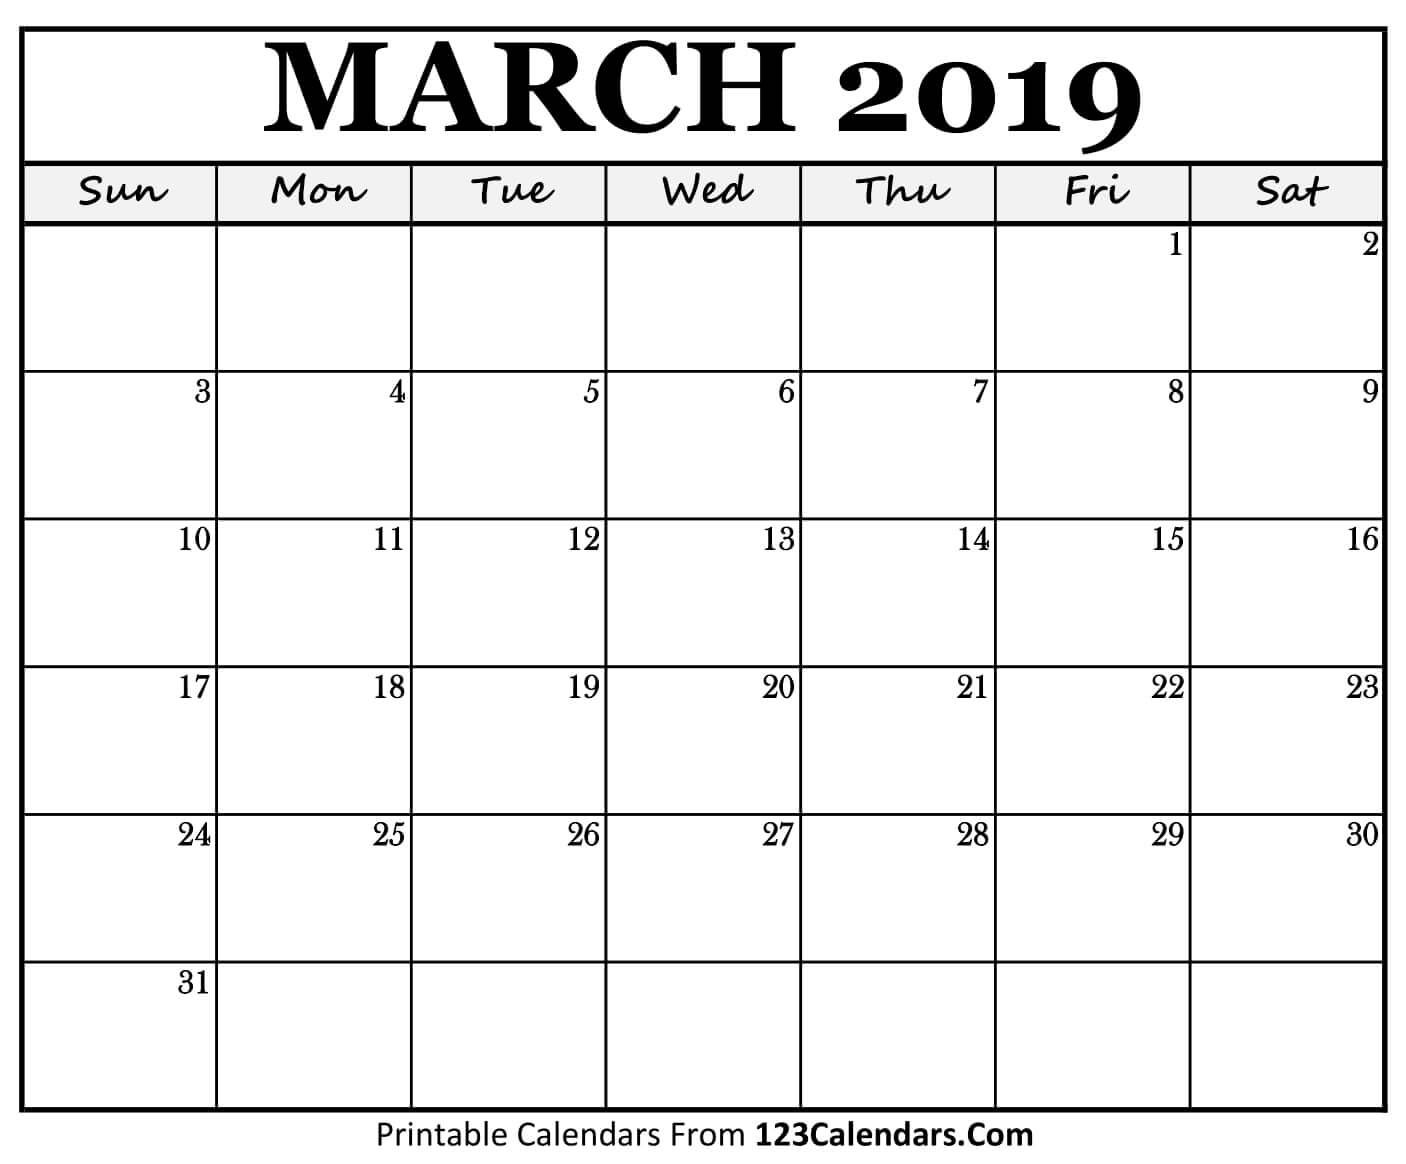 Printable March 2019 Calendar Templates - 123Calendars Calendar 2019 March Printable